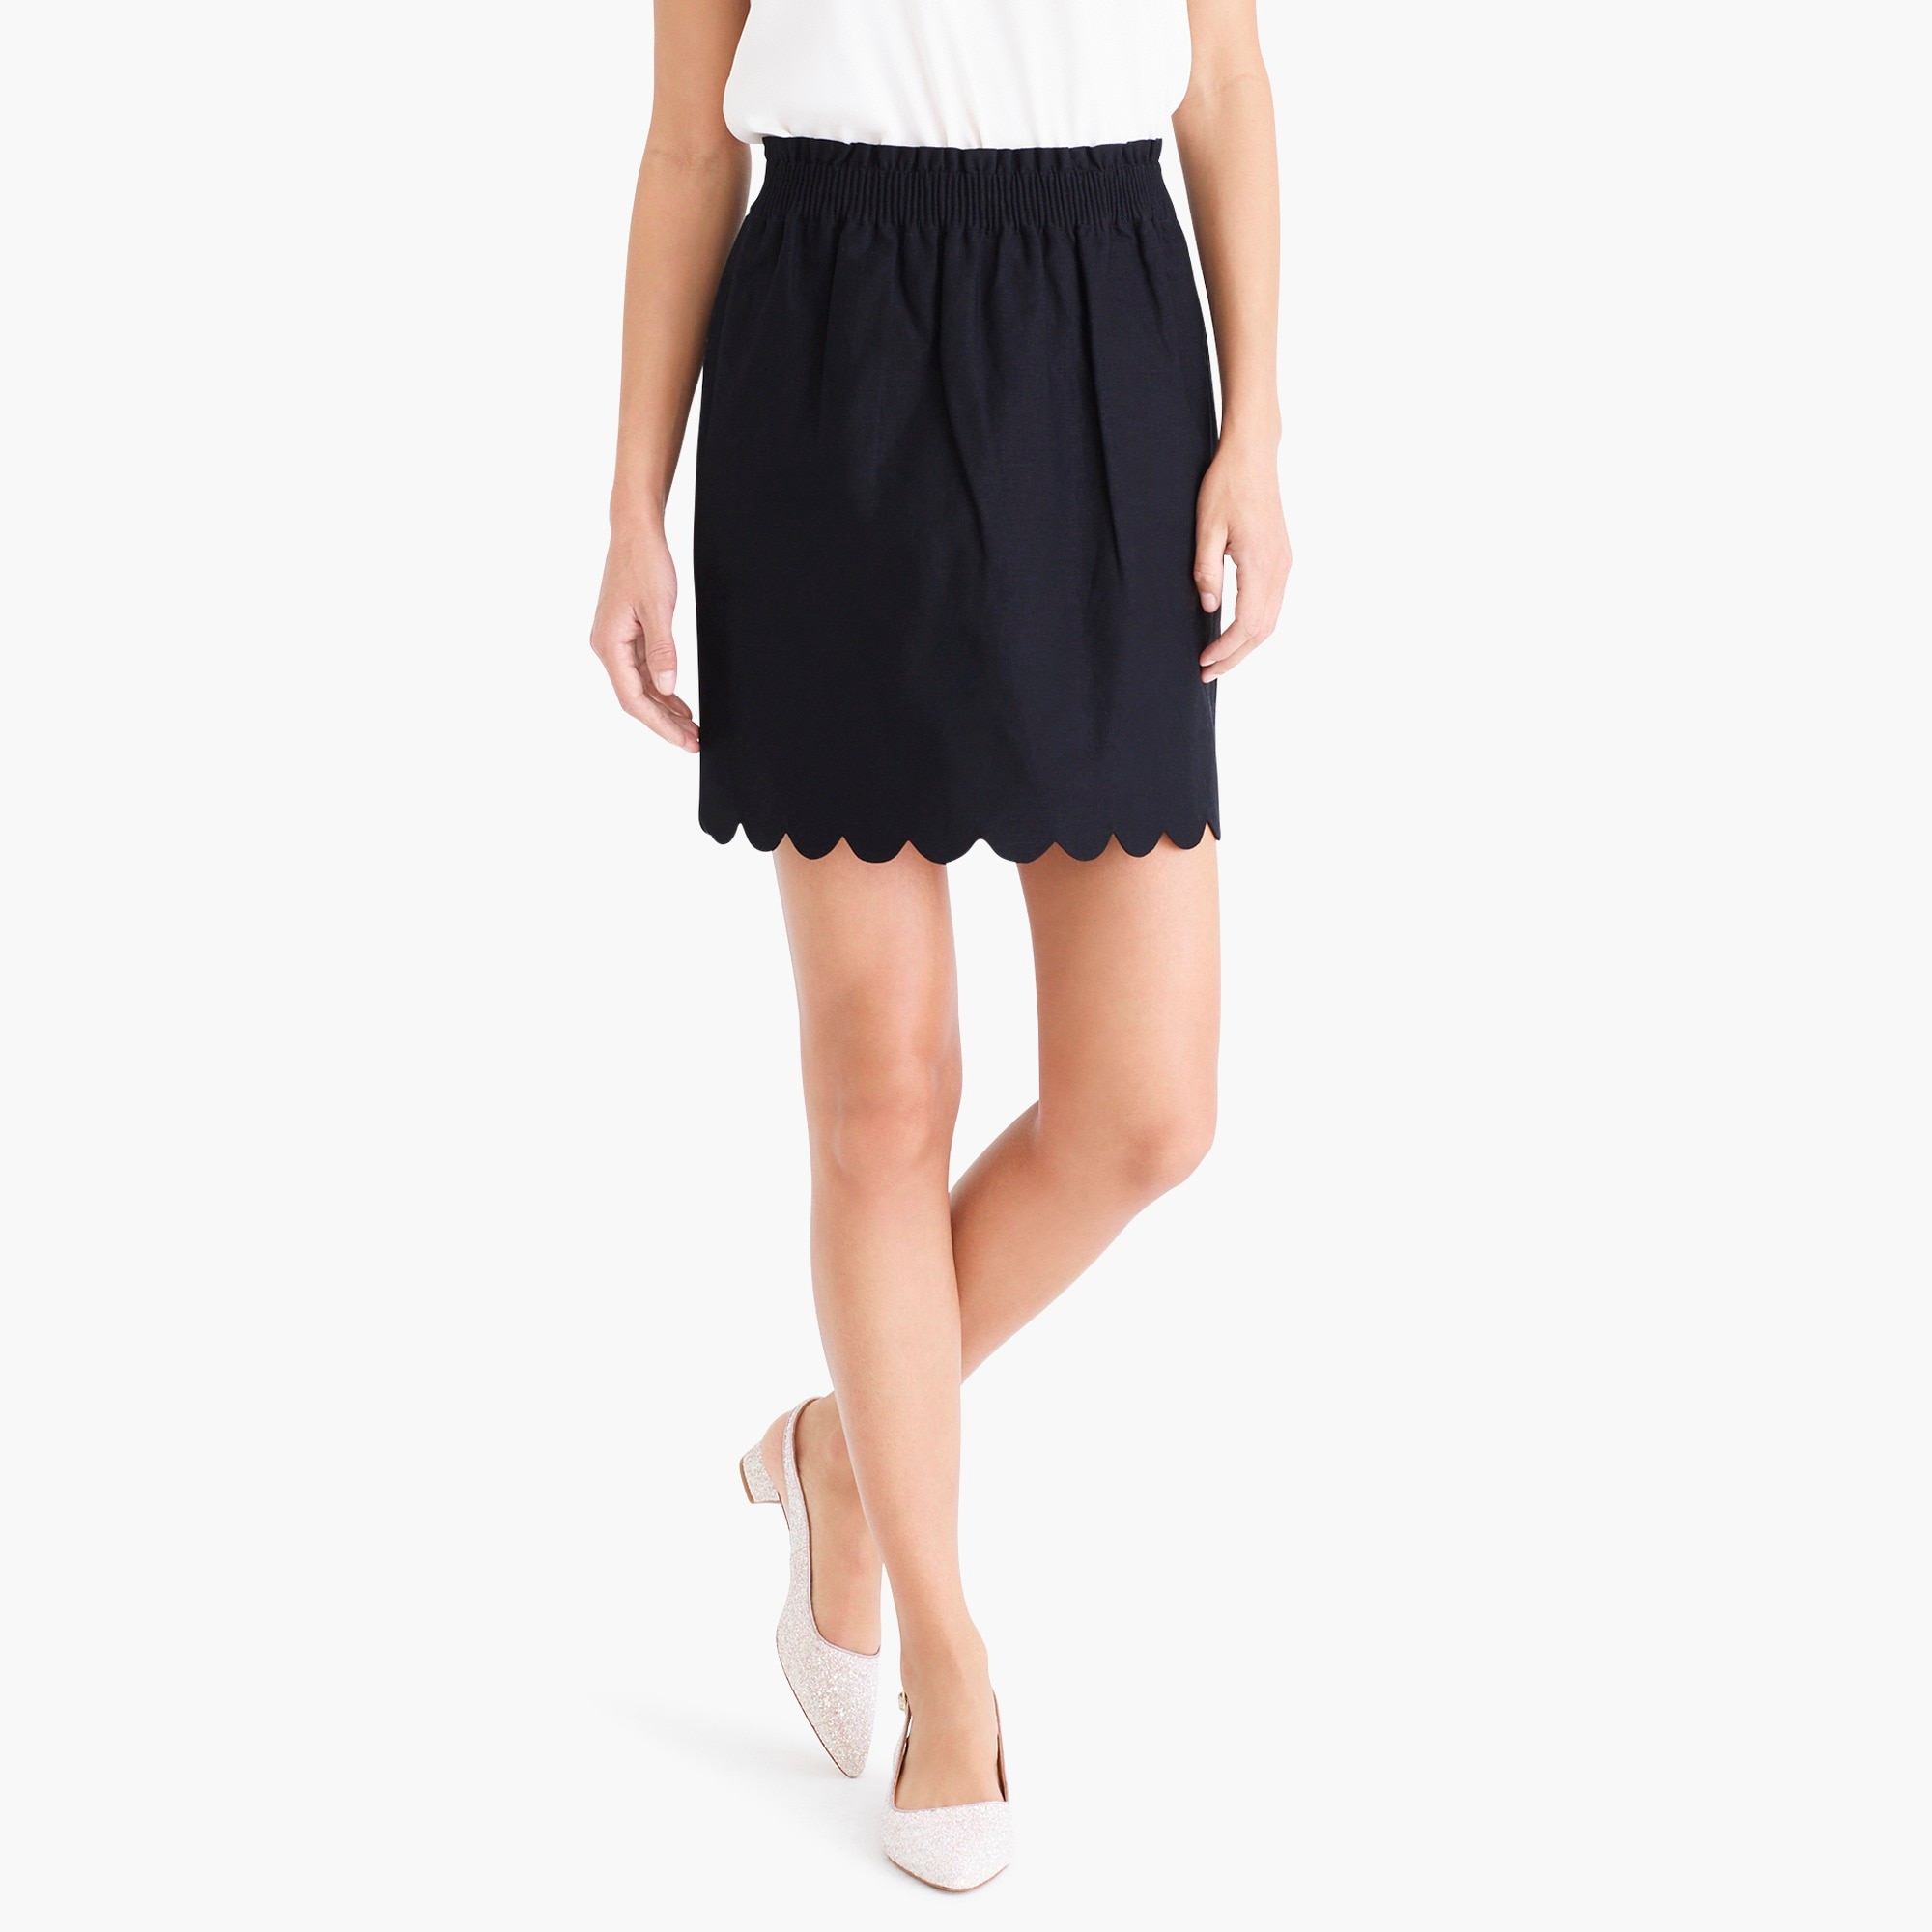 Scalloped sidewalk skirt factorywomen the score: tie-shoulder t-shirts and sidewalk skirts c